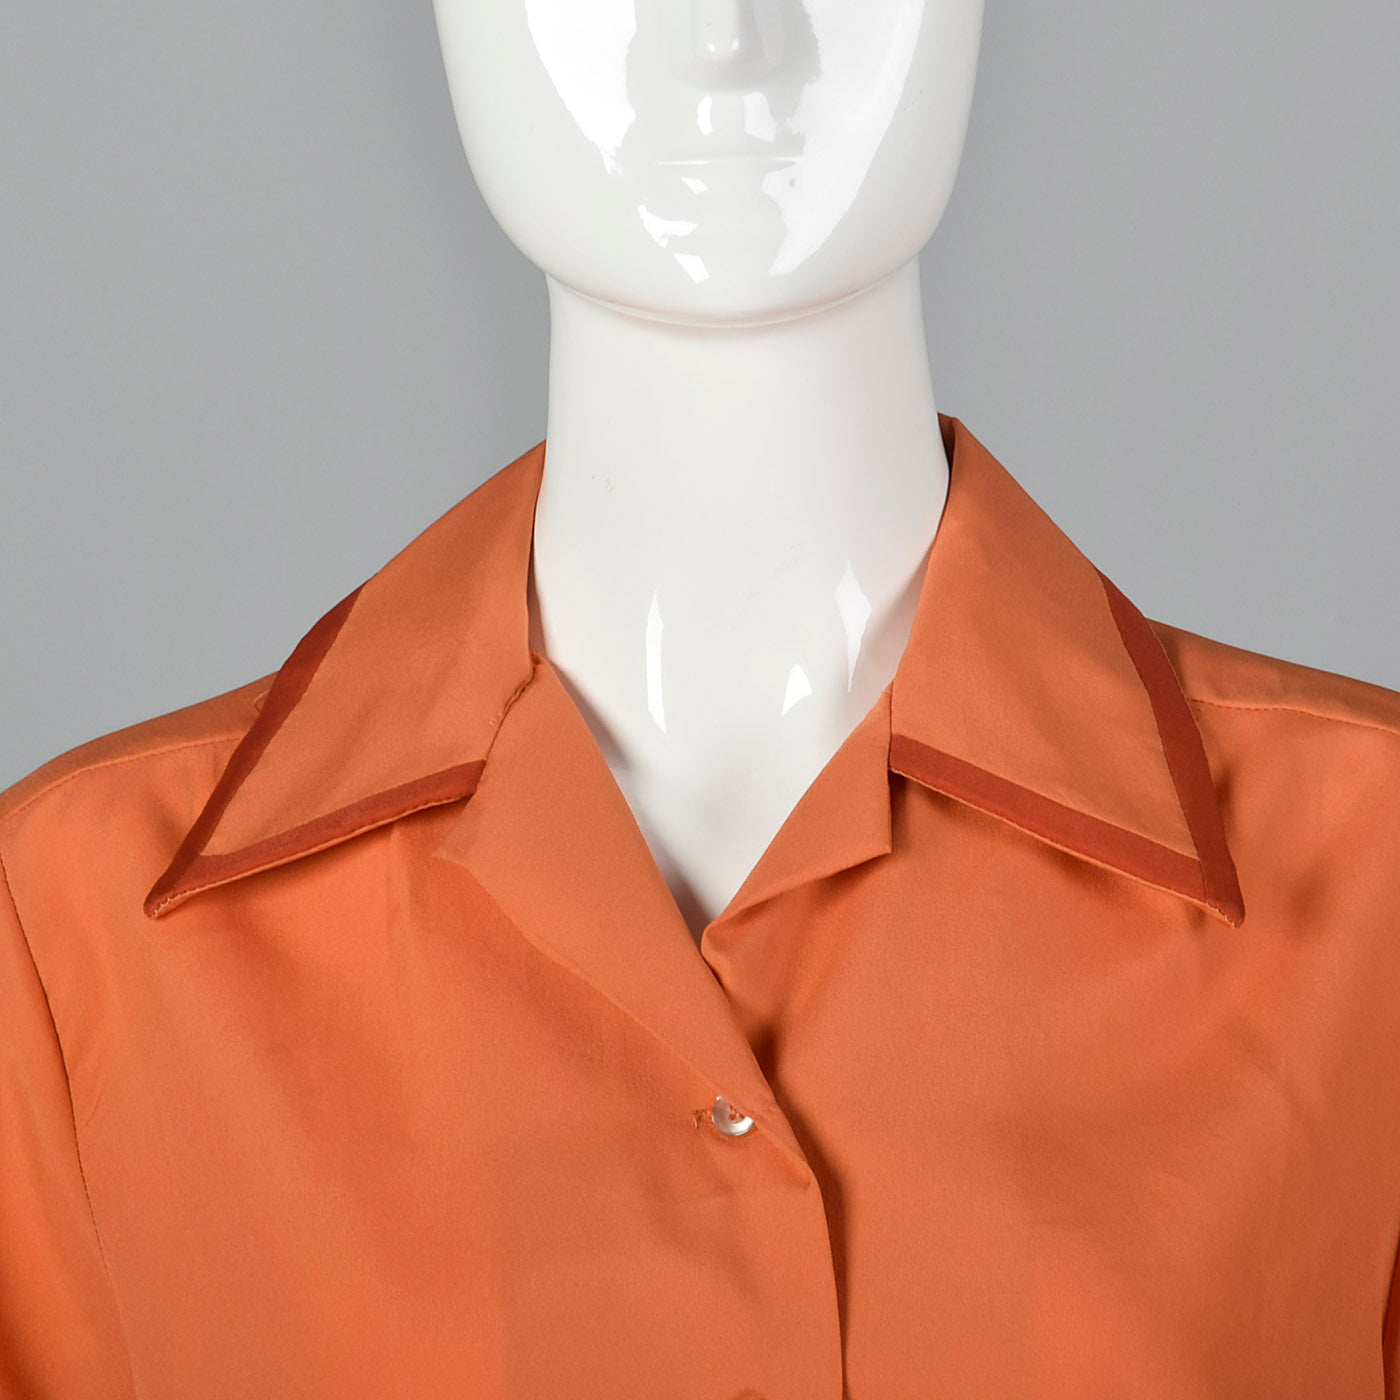 1960s Bowling Shirt with Chainstitch Embroidery